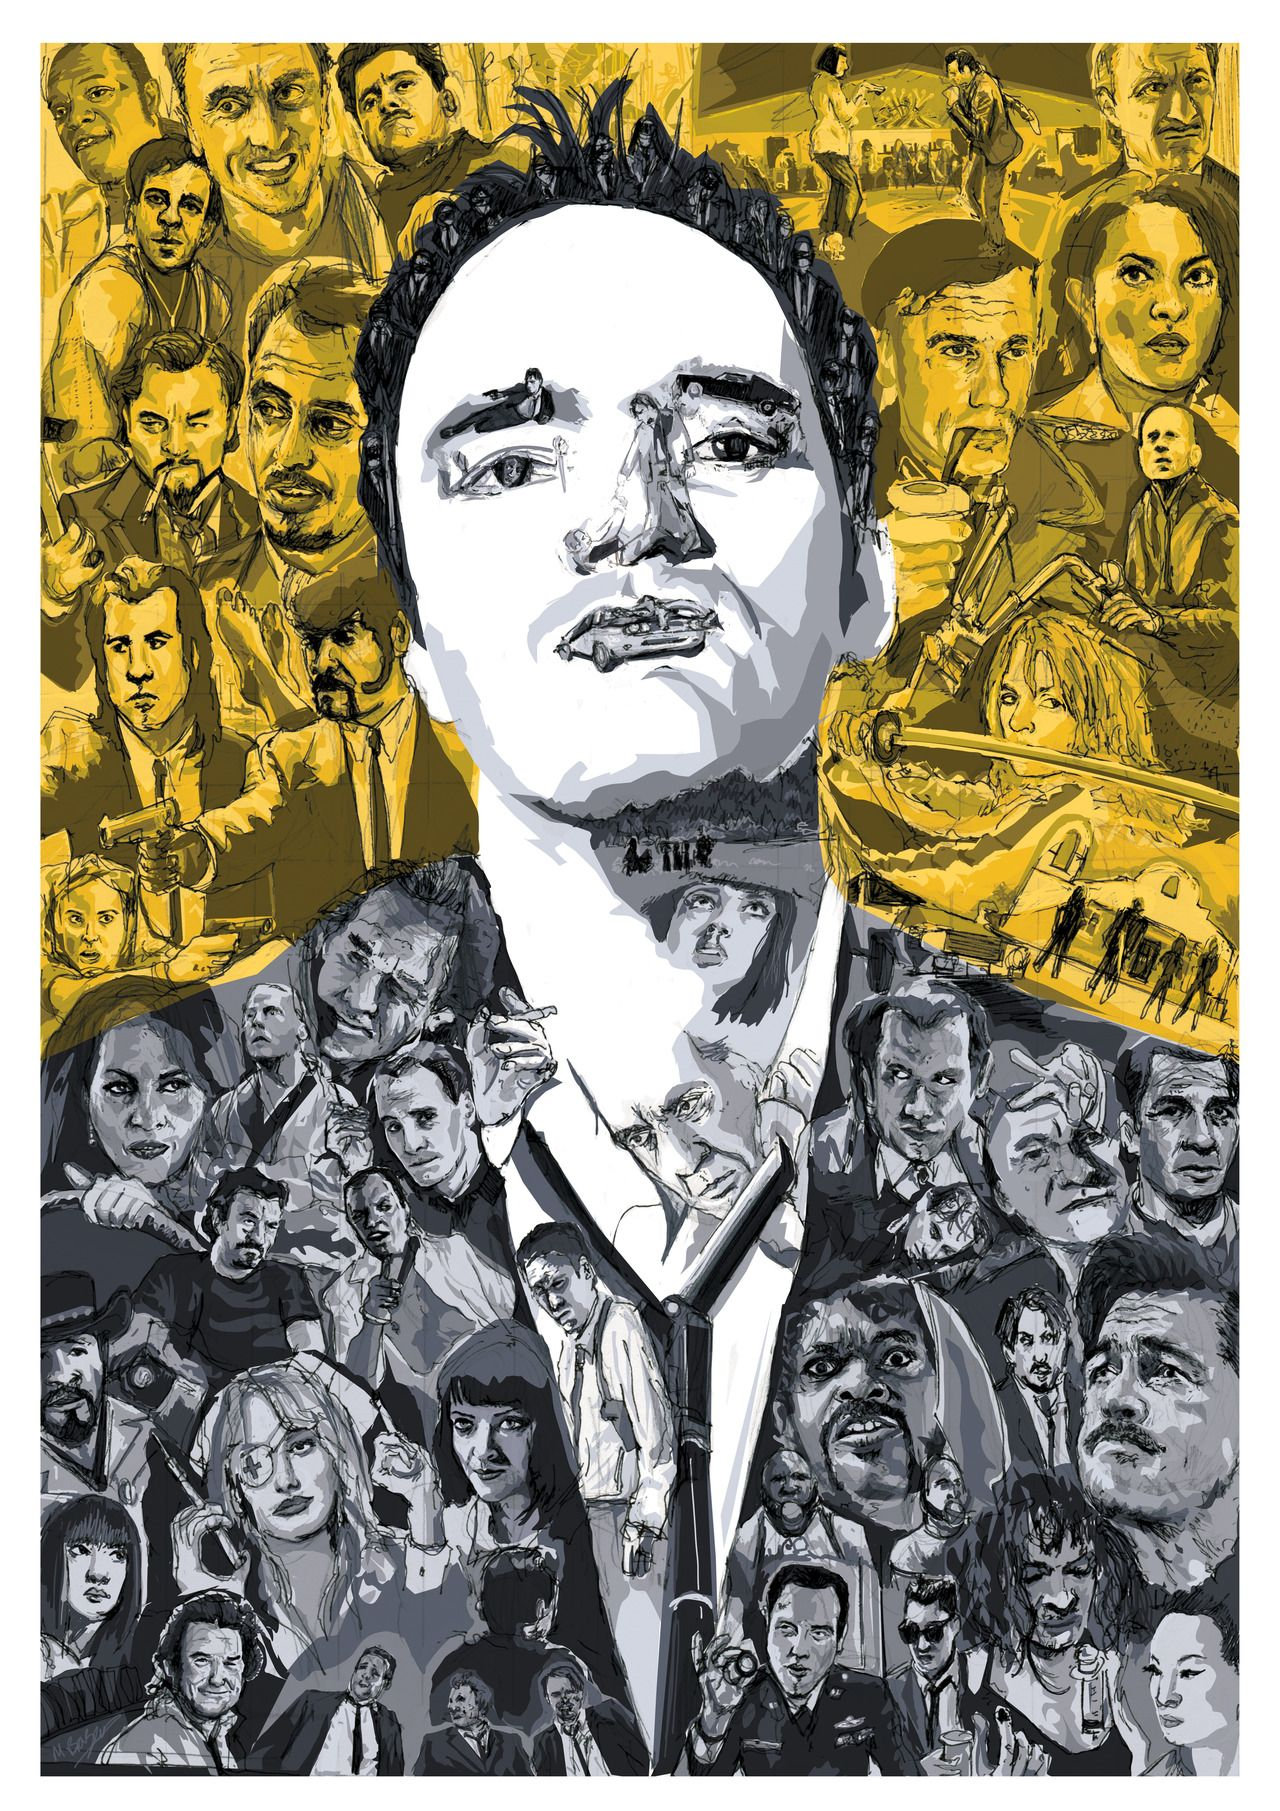 Quentin Tarantino A Portrait Of The Director Made Up Of